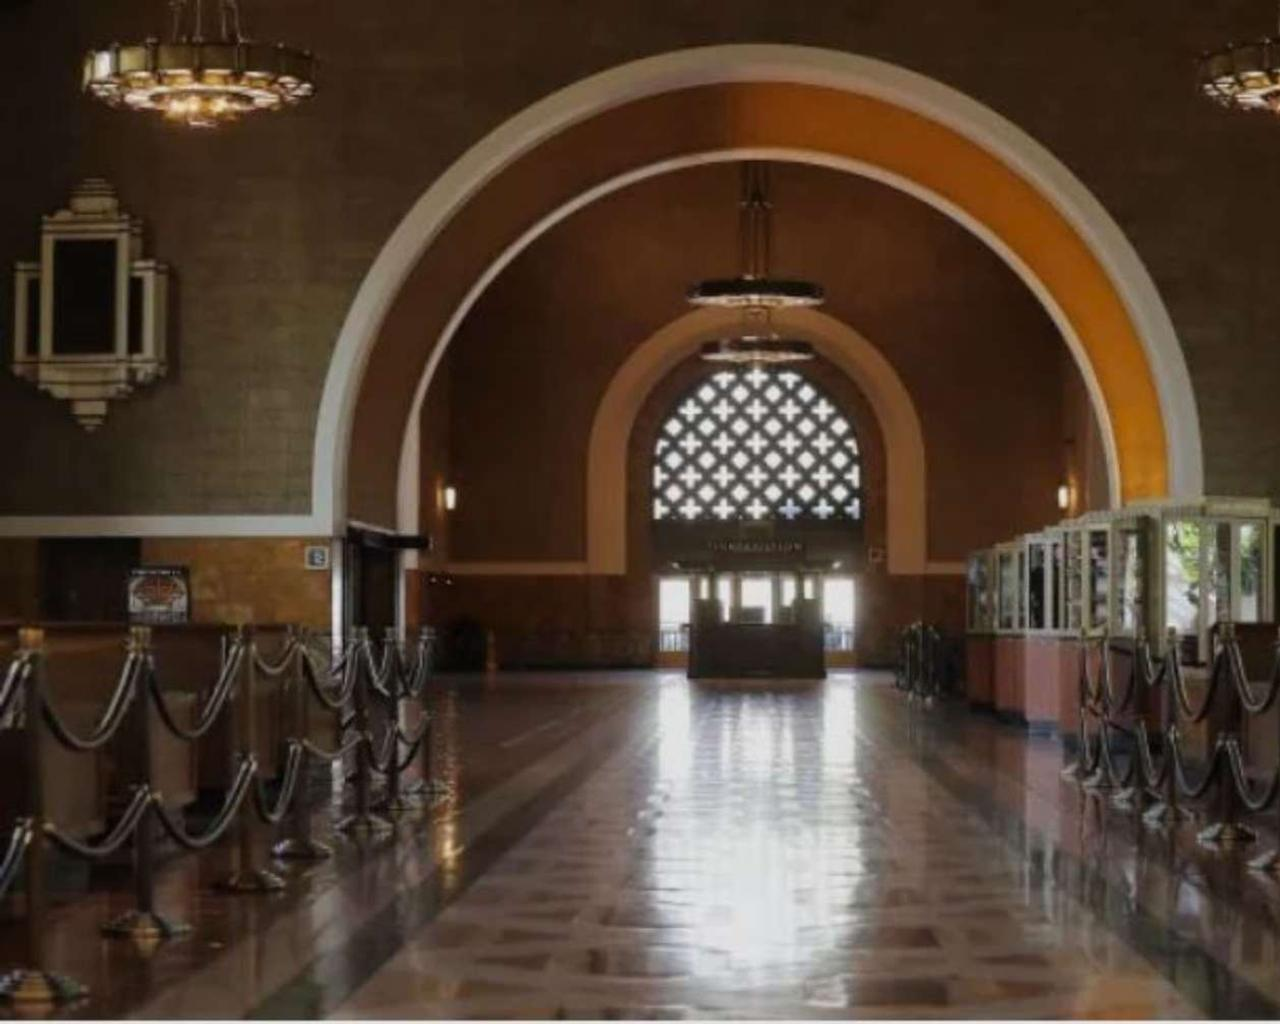 The Oscars will be partially held from the Los Angeles train station to allow social distancing from COVID.